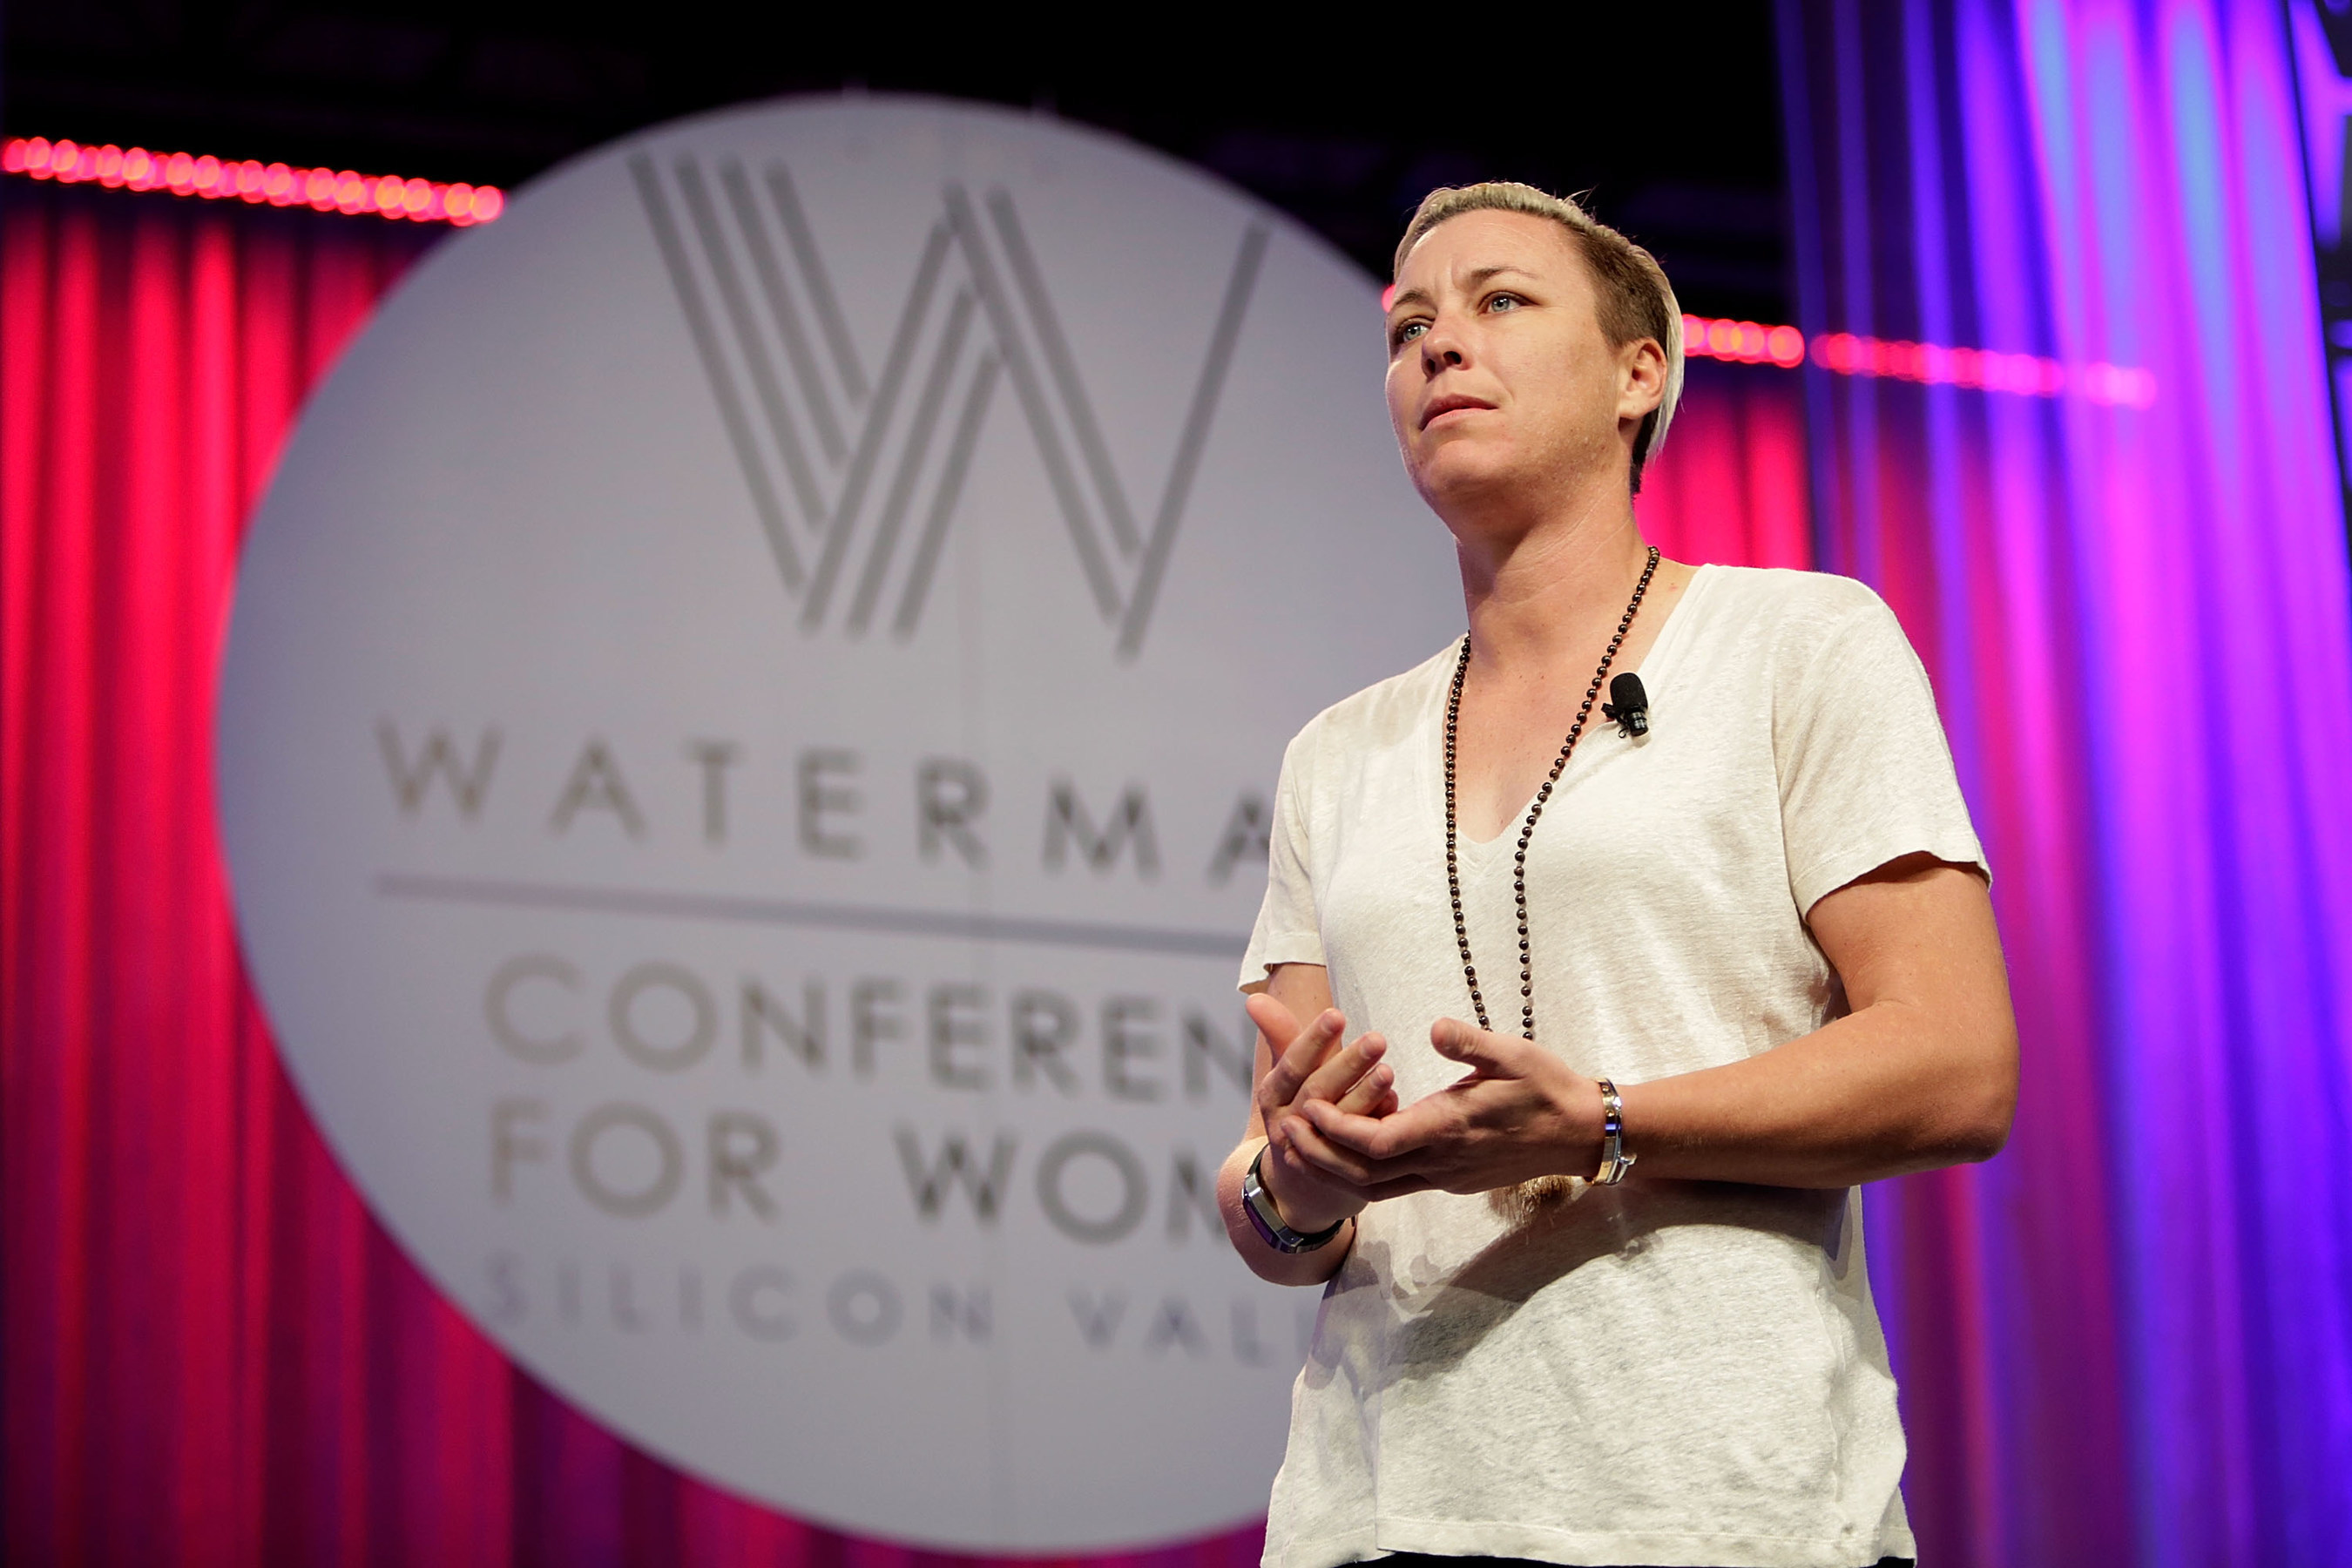 Mindy Kaling, Abby Wambach, John Jacobs, Leila Janah Speak at Watermark Conference for Women